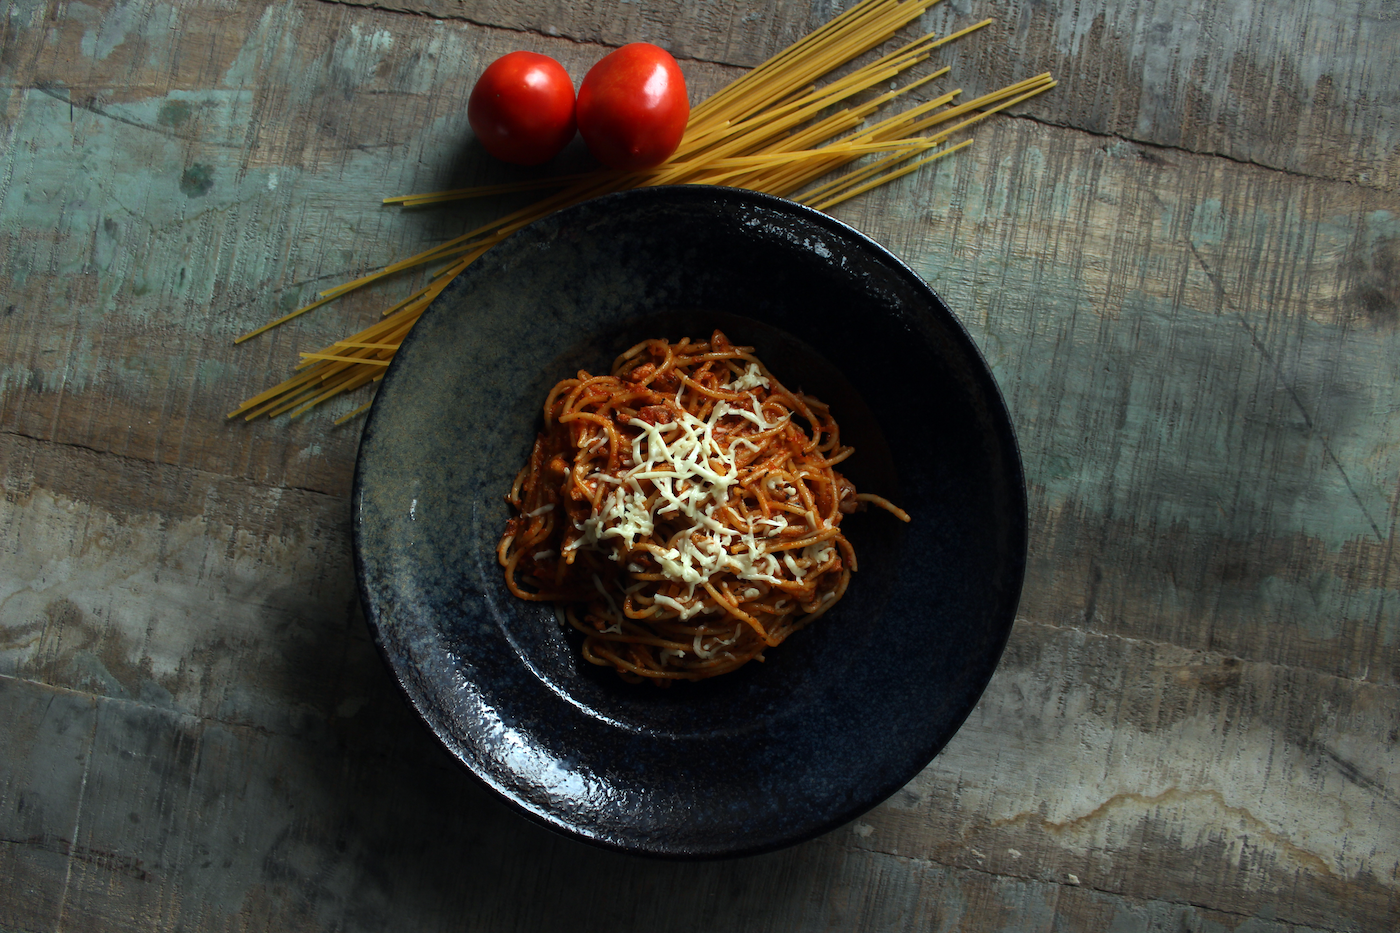 Spaghetti at The Nilaya